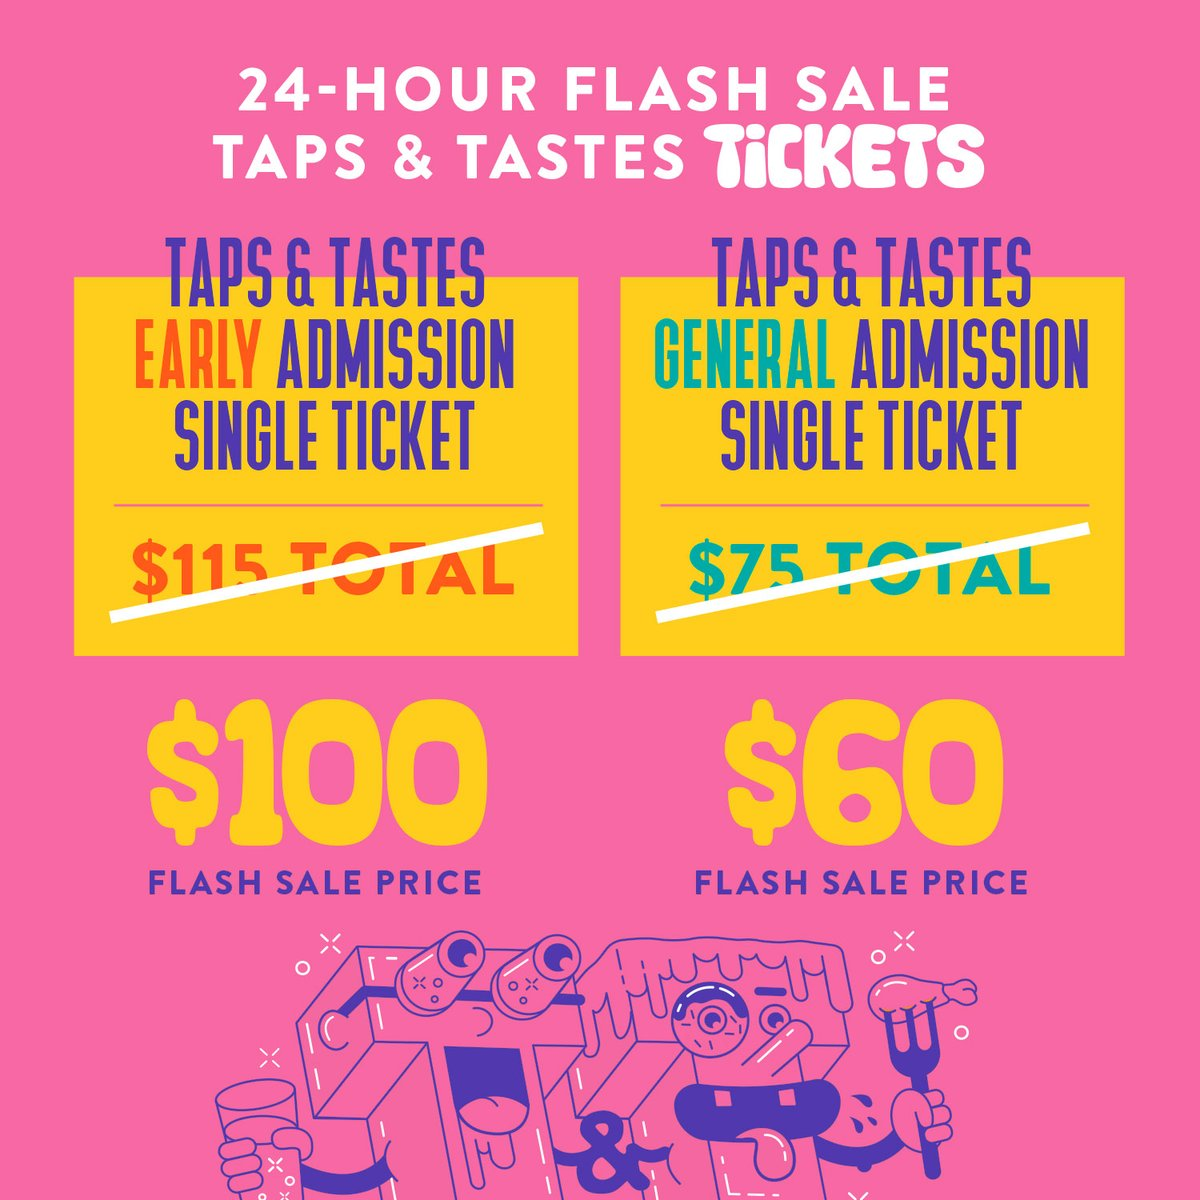 🚨 Don't miss this deal on @Blvdia Taps & Tastes tickets! 👇